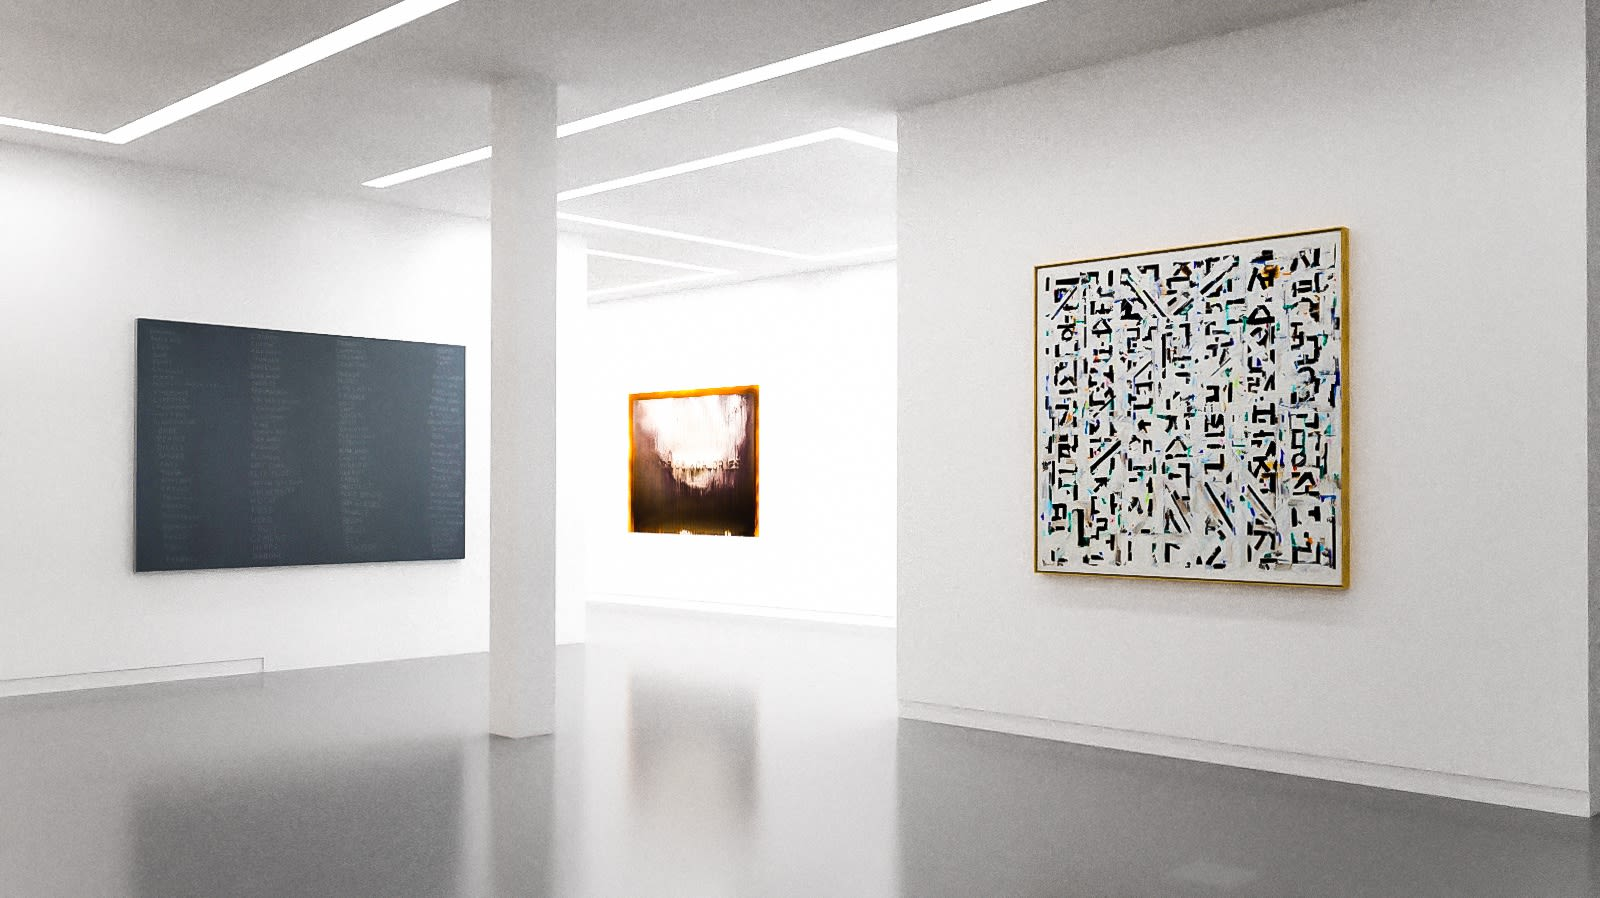 Works by Scott Reeder, Michael Joo, and Young-Il Ahn in The Written Word (virtual exhibition view), 2020, Kavi Gupta